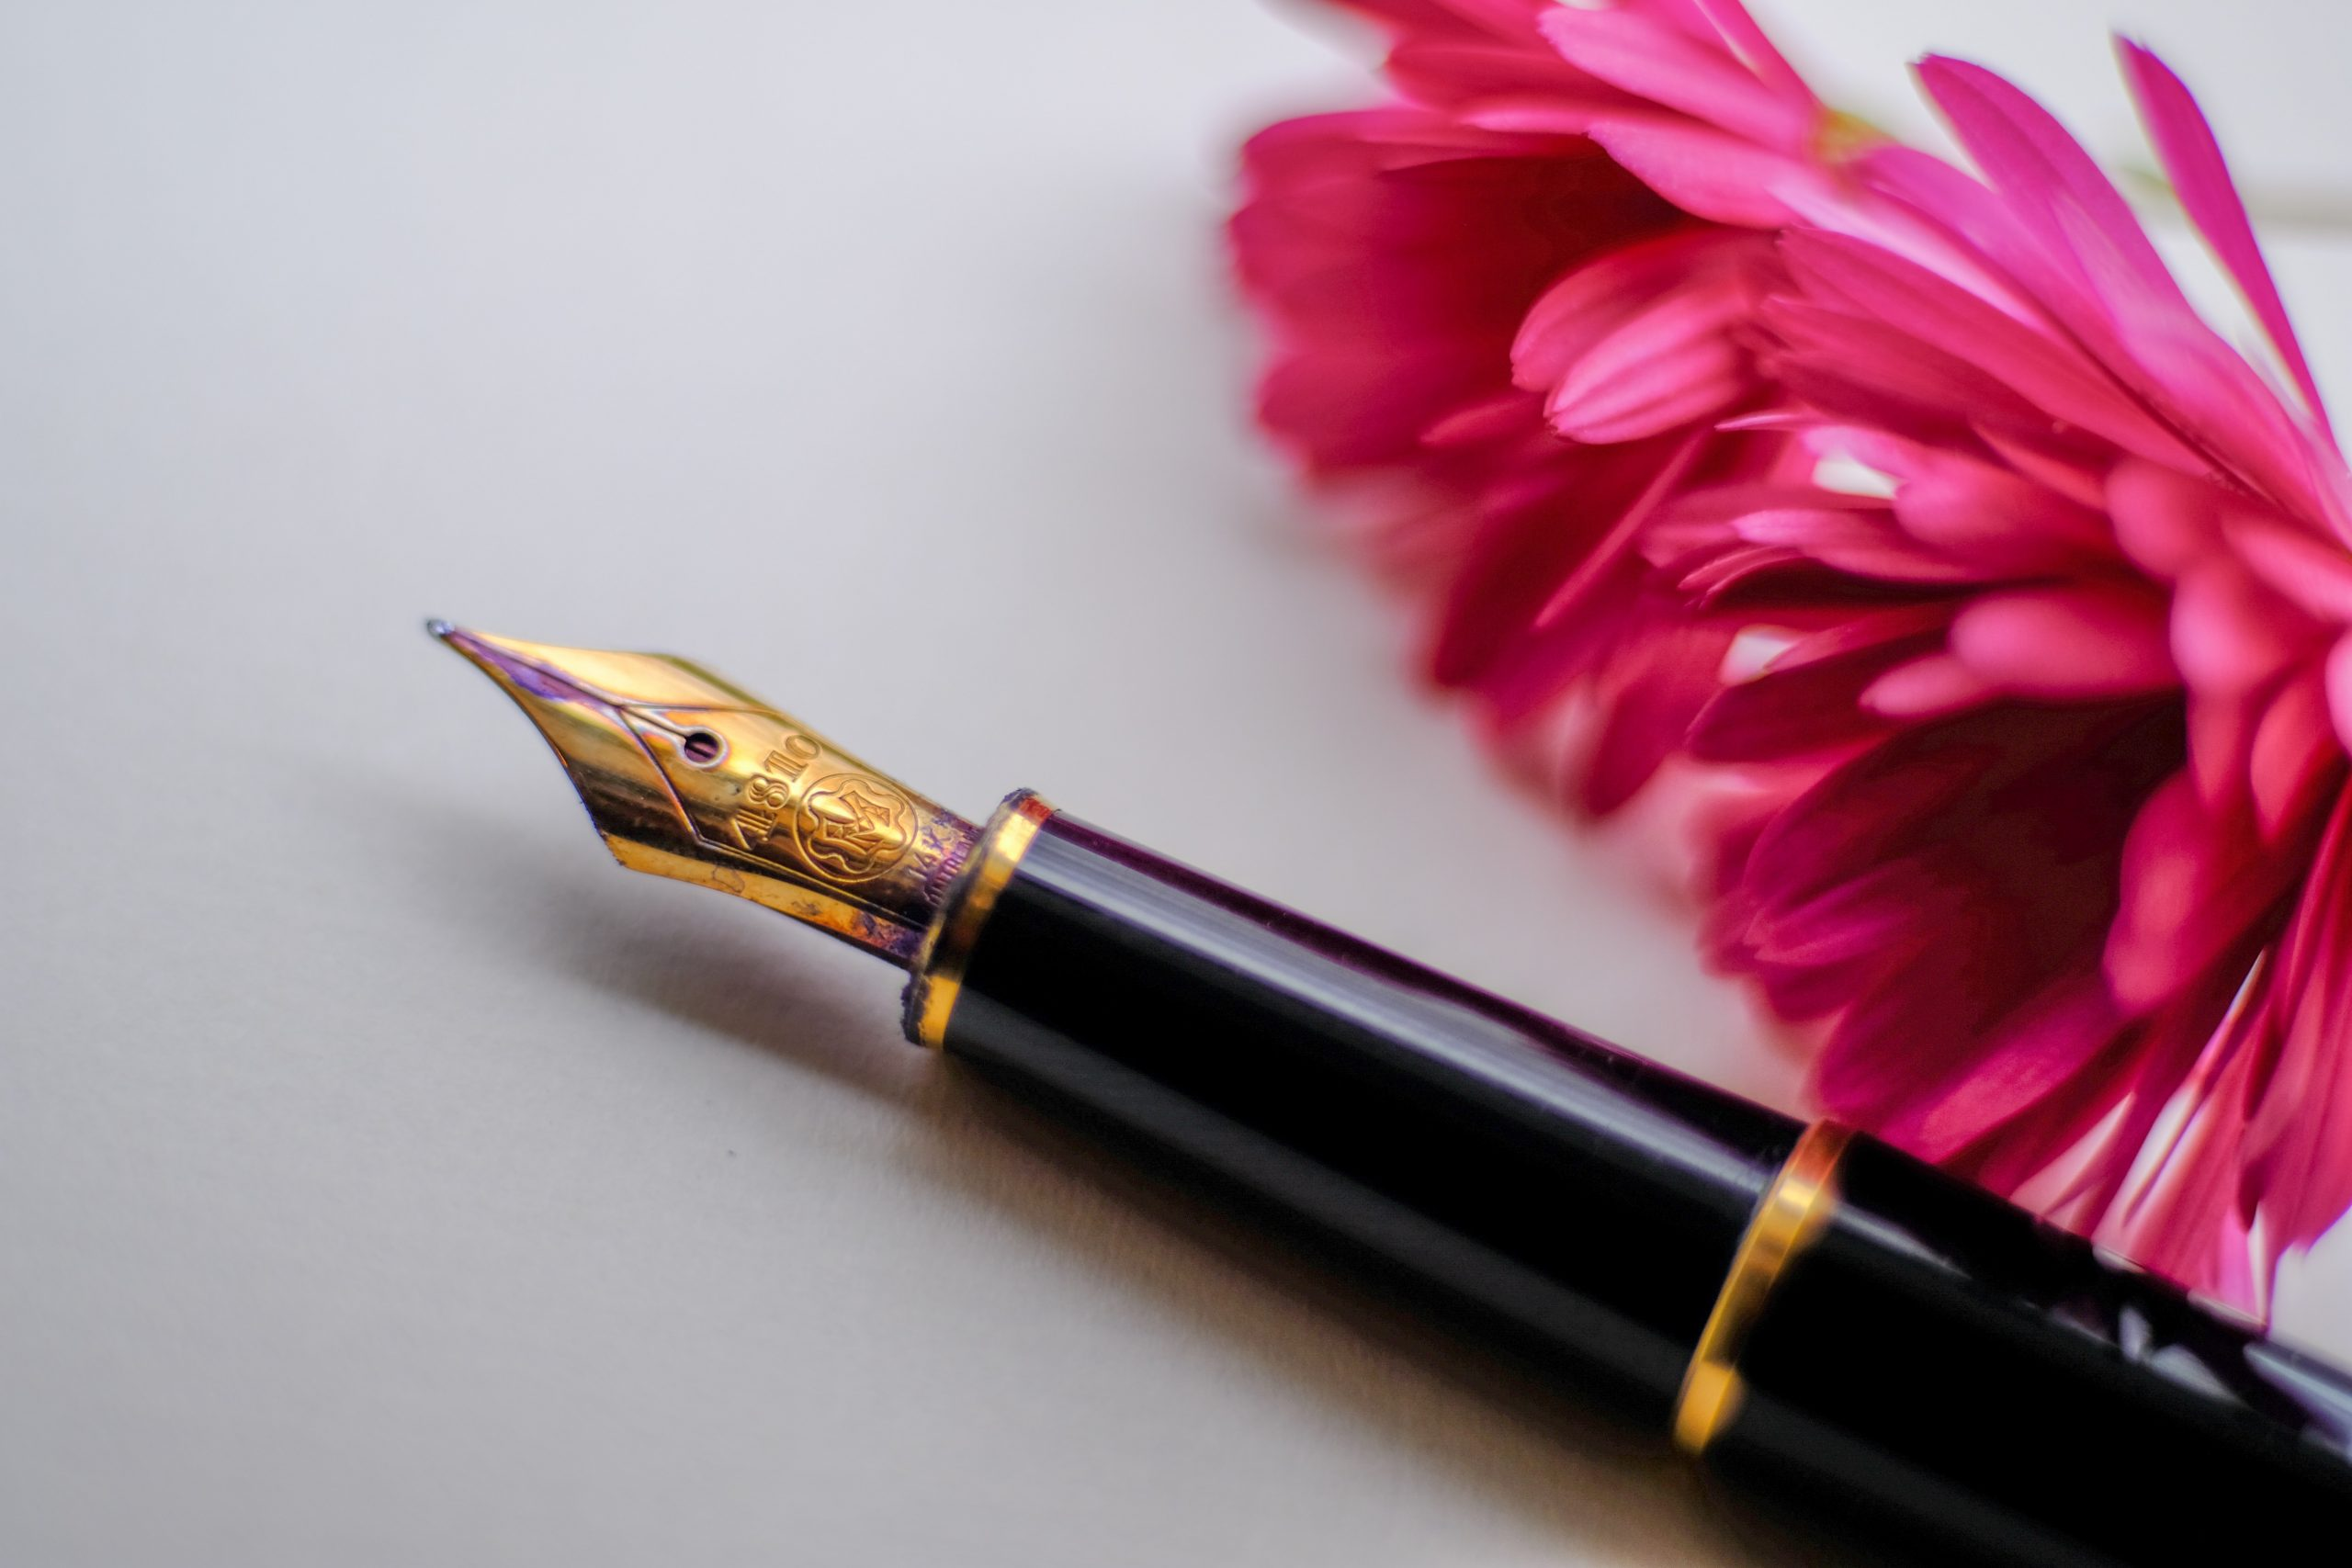 black and gold-colored fountain pen beside flower